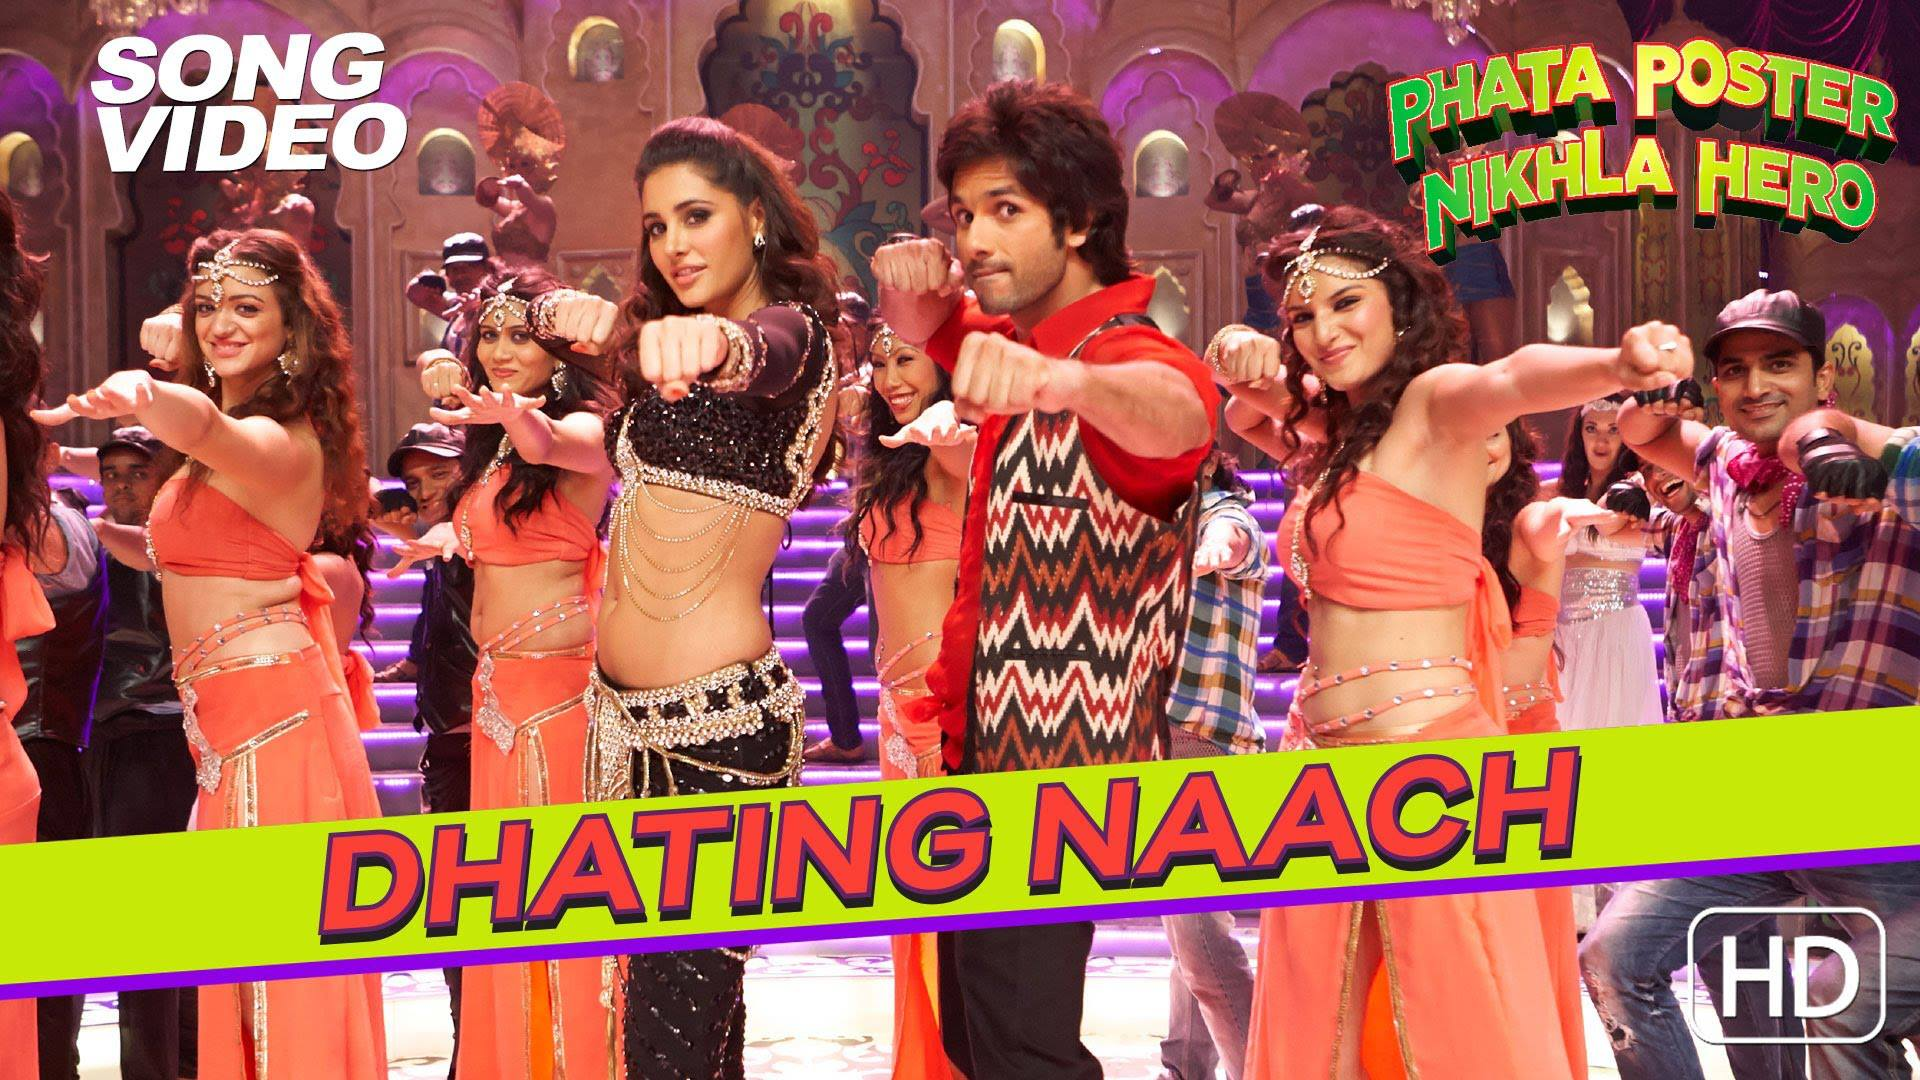 Watch: Nargis Fakhri's Item Song 'Dhating Naach' From 'Phata Poster Nikla Hero'